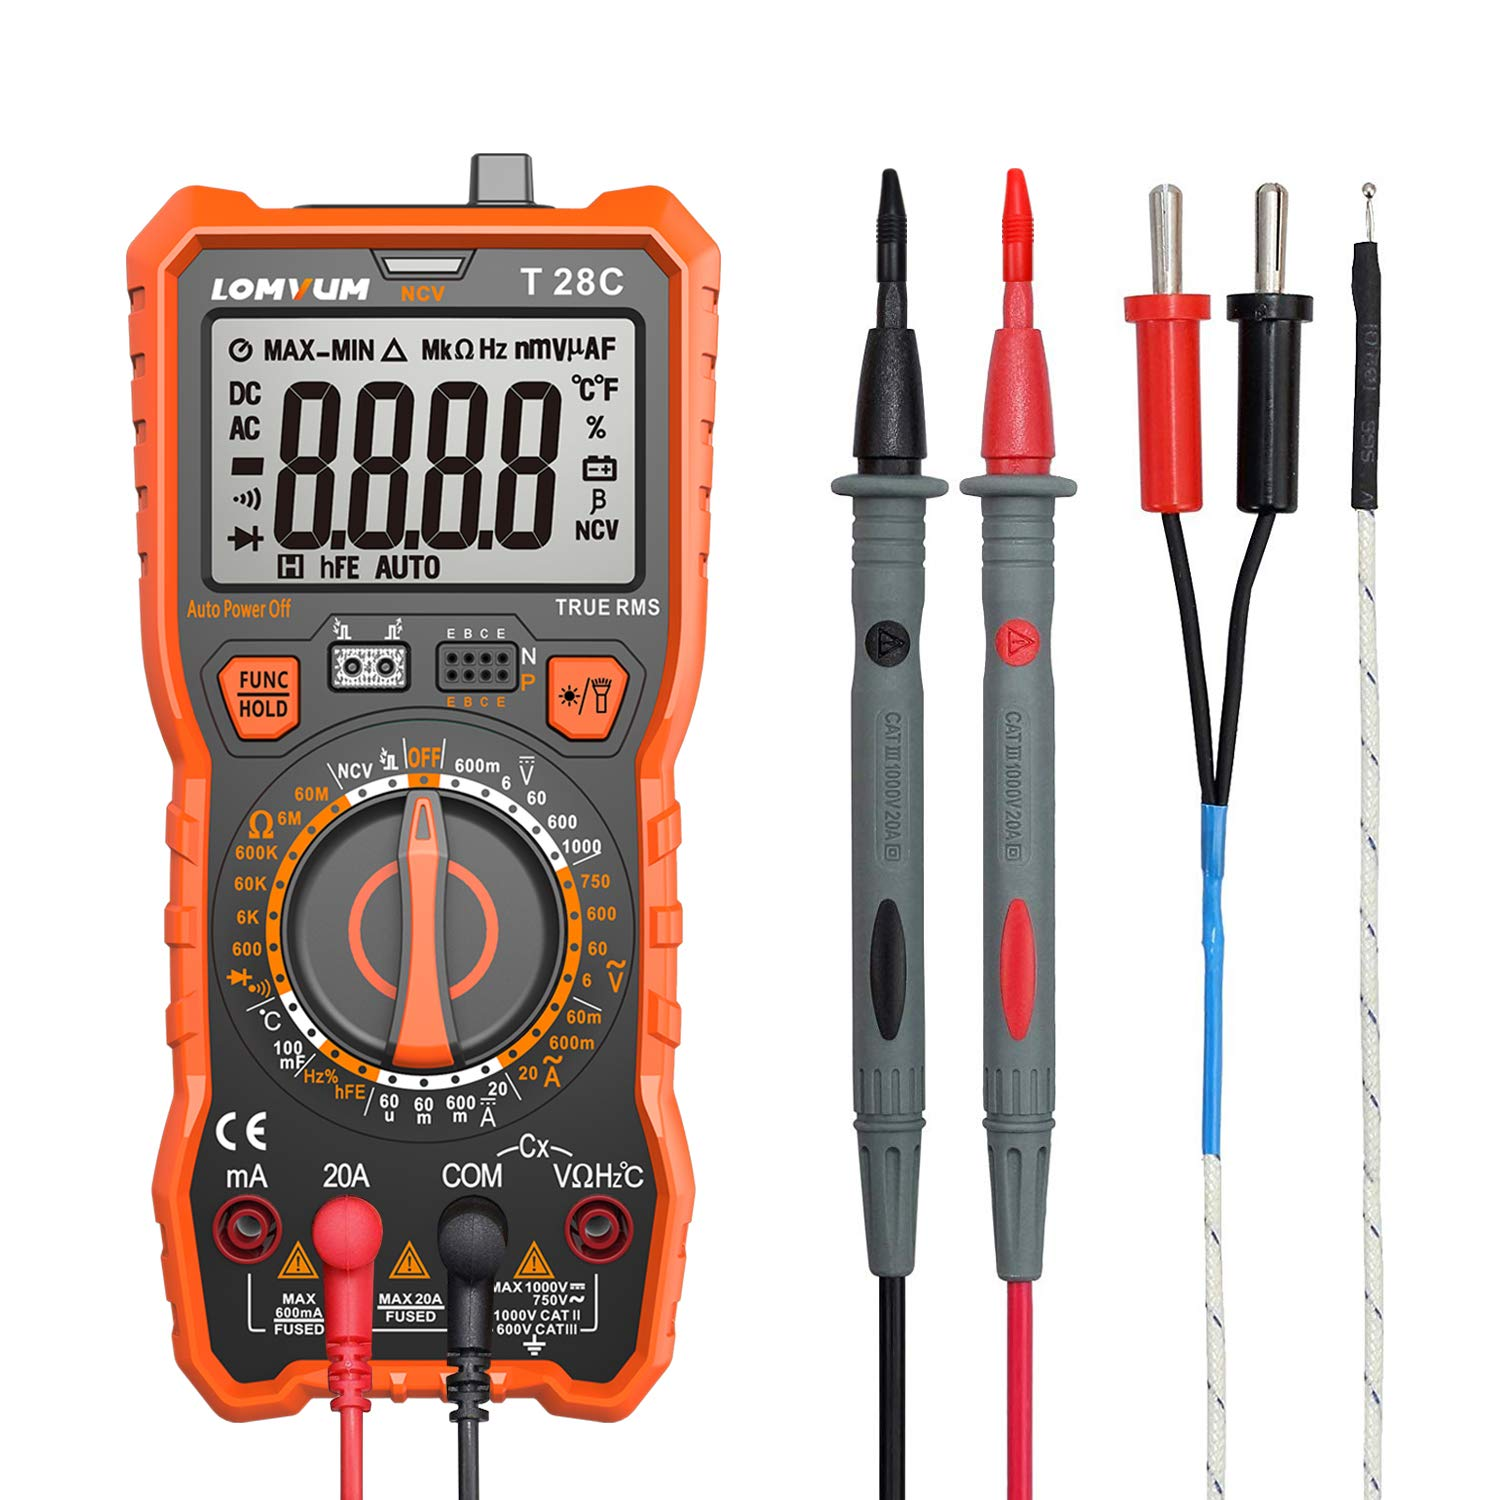 Manual-Ranging Digital Multimeter, 6000 Counts Electrical Tester AC/DC Voltage Current Detector, NCV, Resistance, Capacitance, Diode Electronic, Duty Cycle Tester, 2.7 Inch LCD T28C